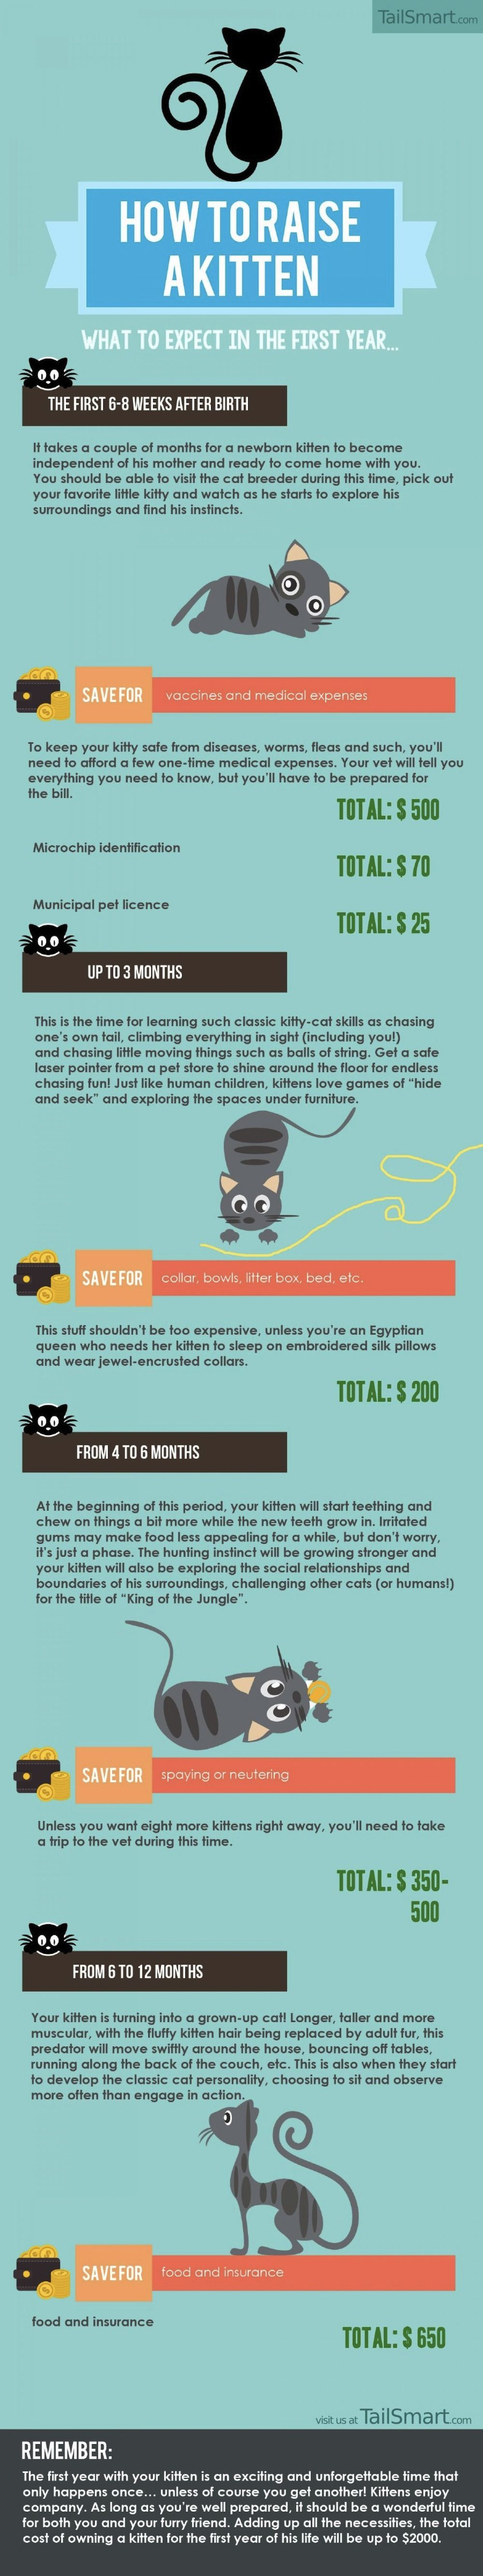 Infographic How To Raise A Kitten DesignTAXI